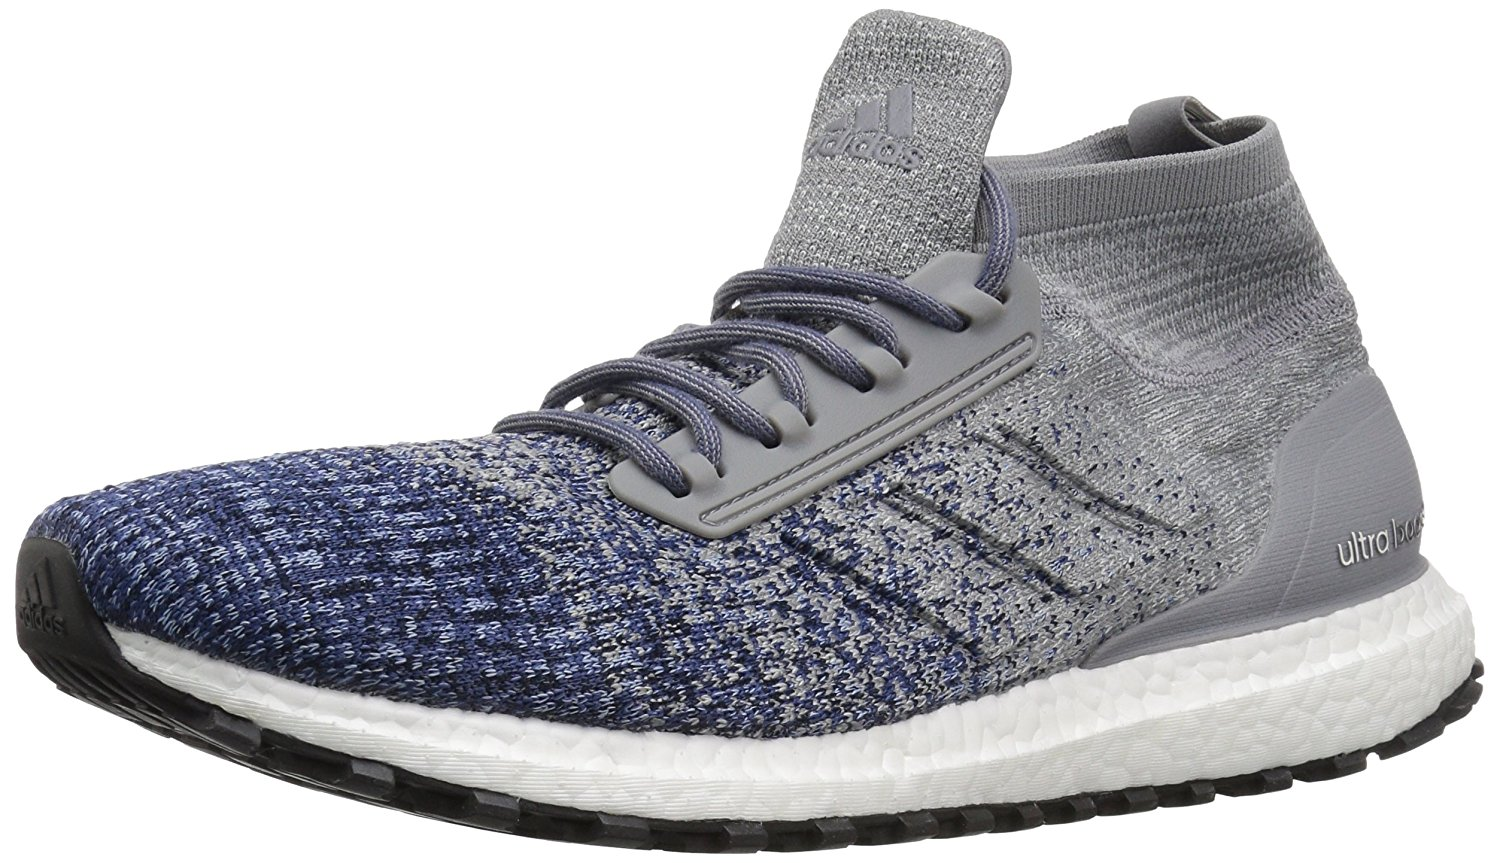 7e2a0d43acff81 Adidas Ultraboost All Terrain  To Buy or Not in 2019